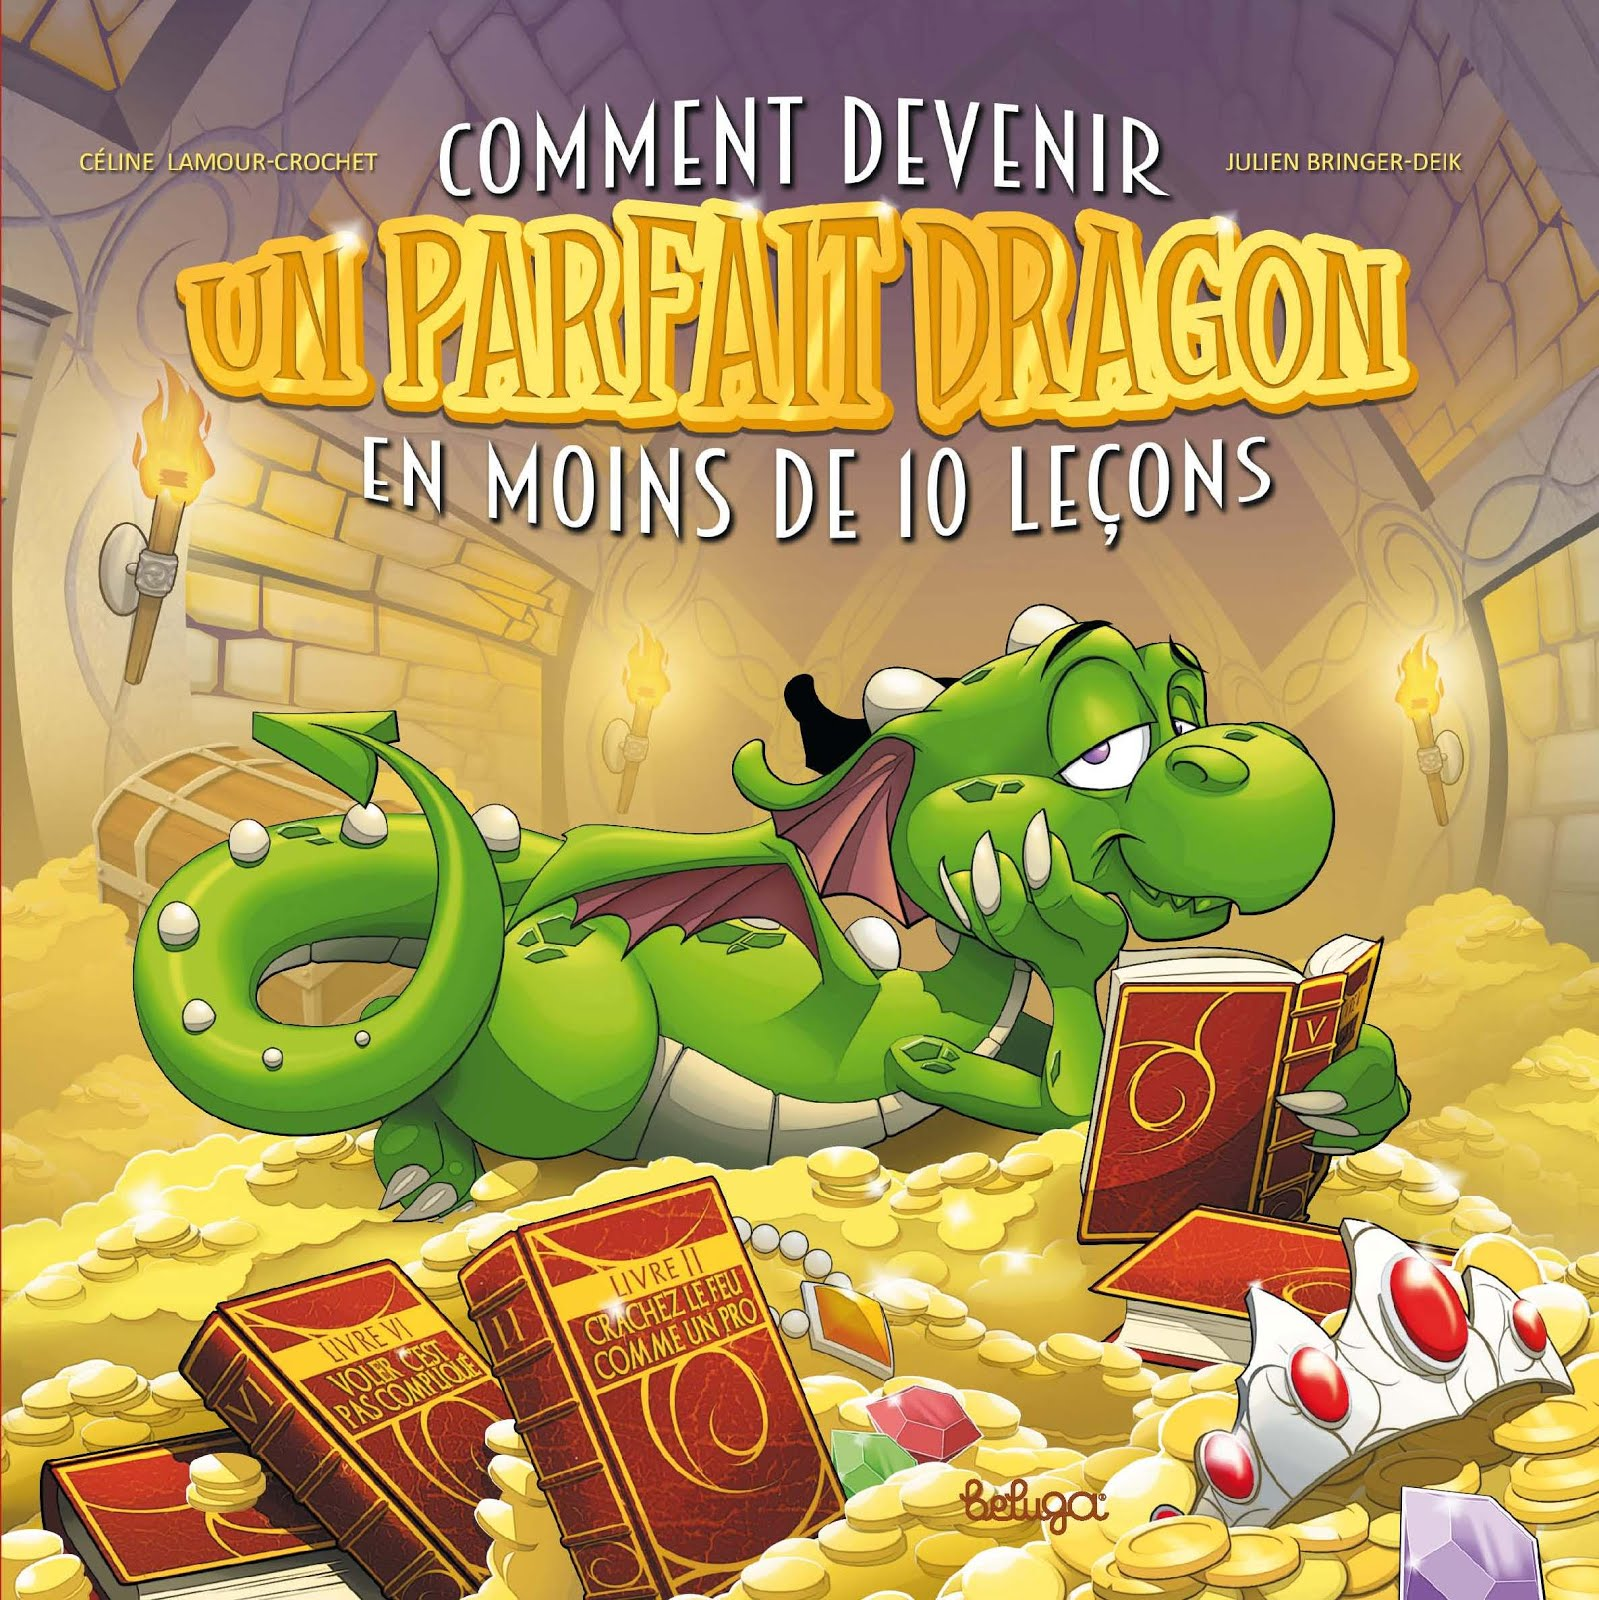 Comment devenir un parfait dragon...